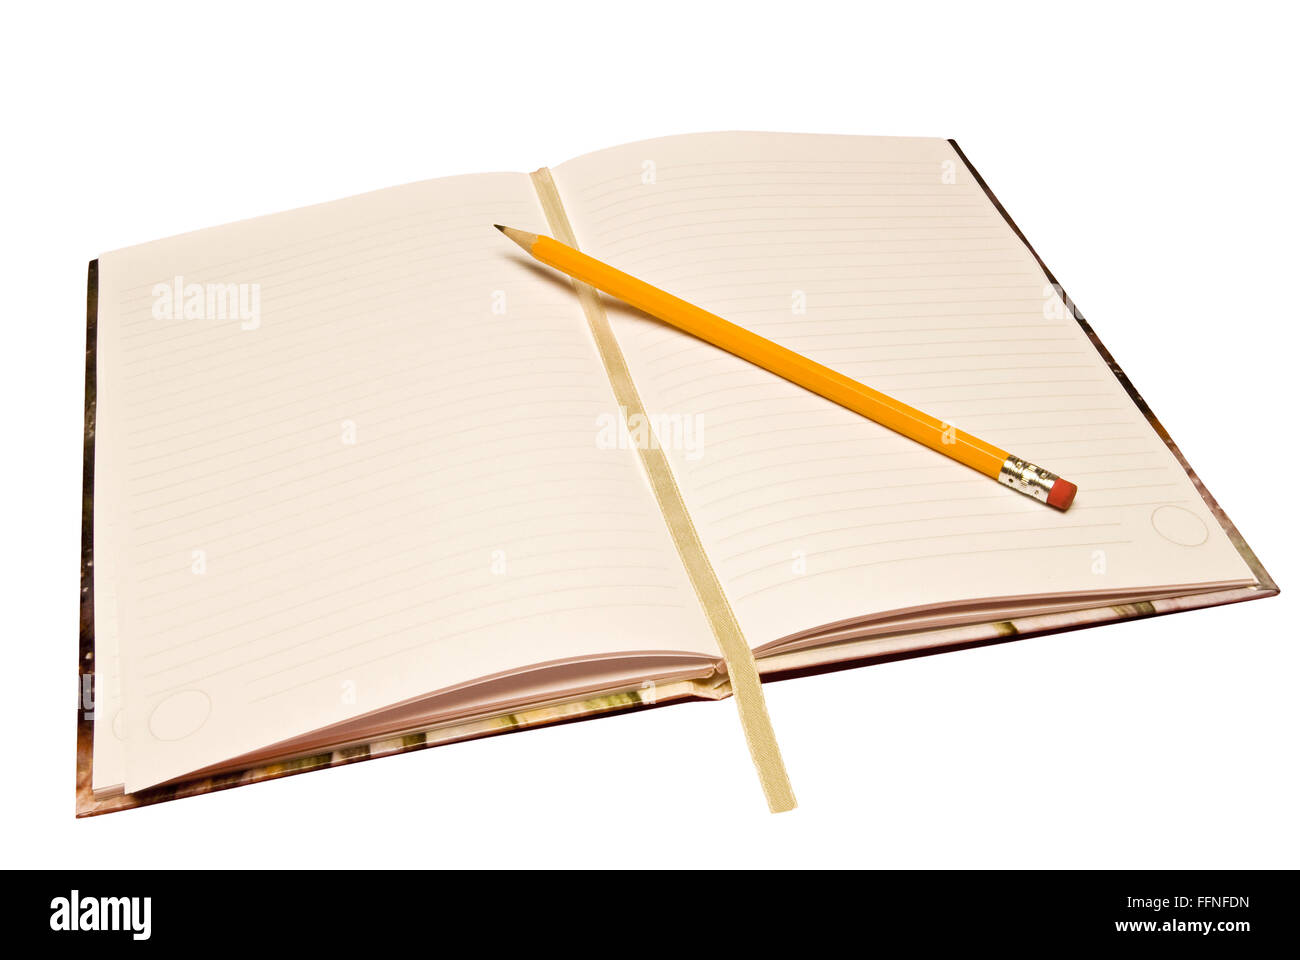 Journal With Pencil - Stock Image